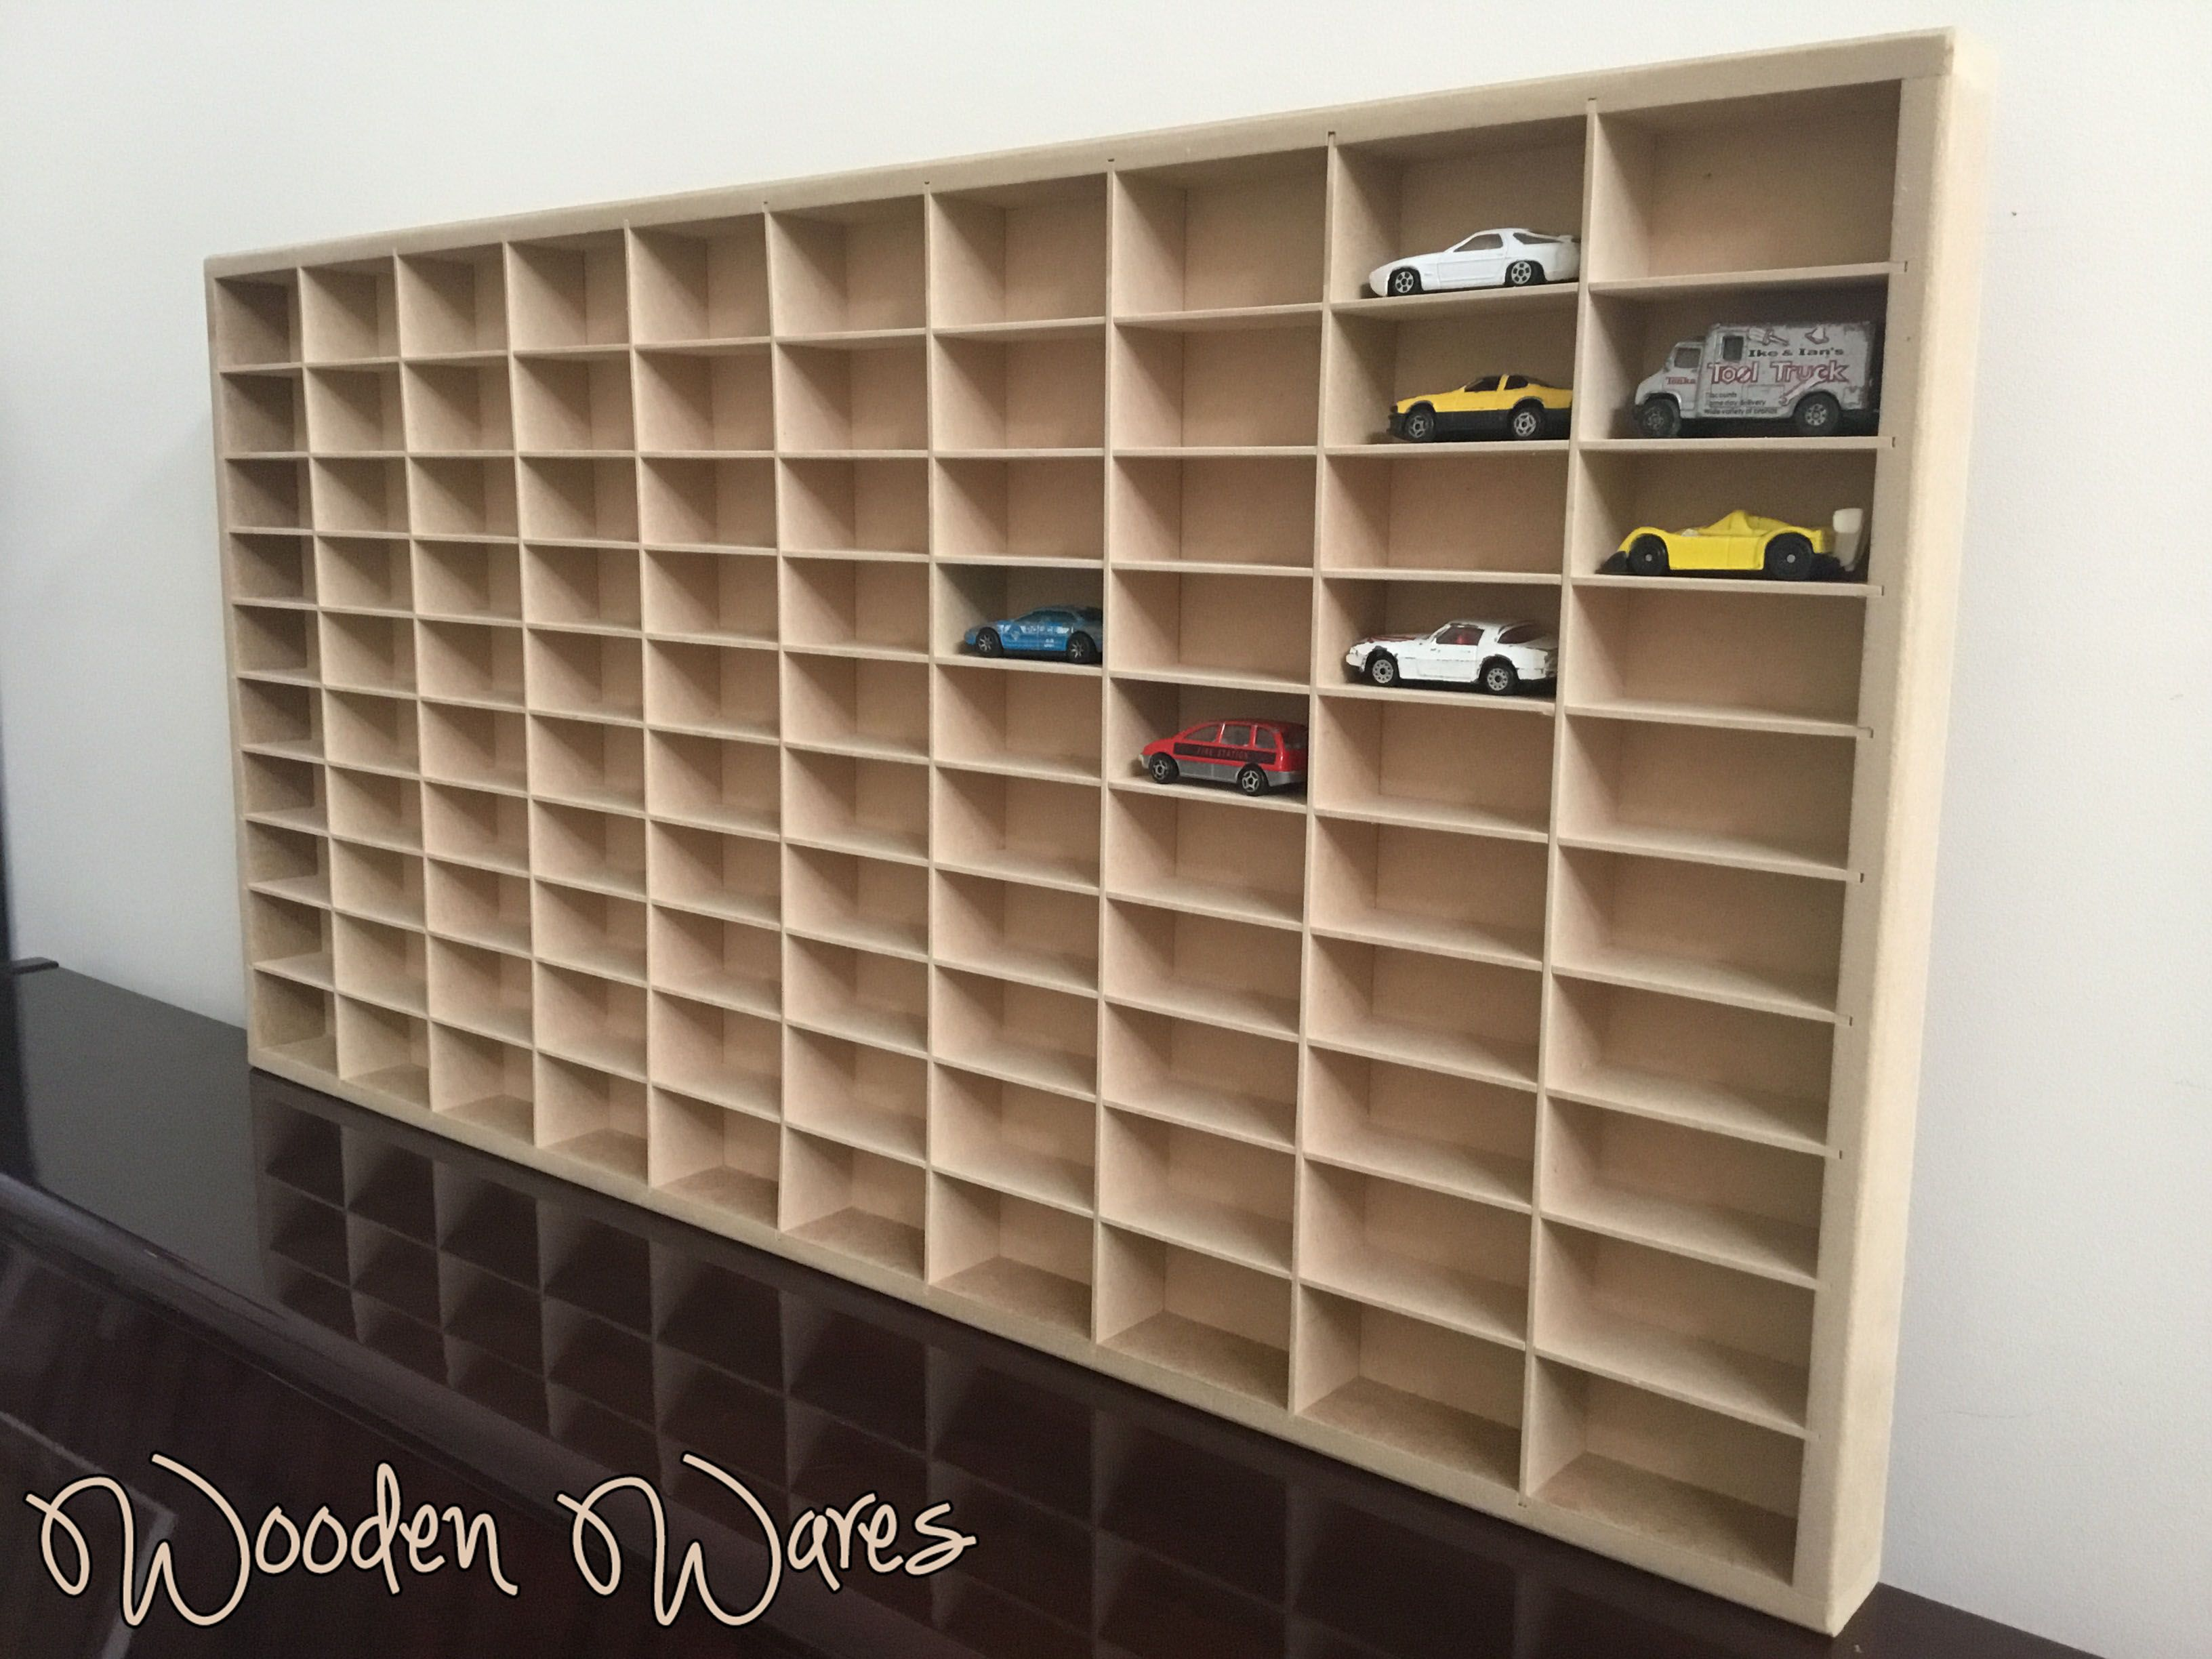 Matchbox, Hot Wheels model car storage. Designed in